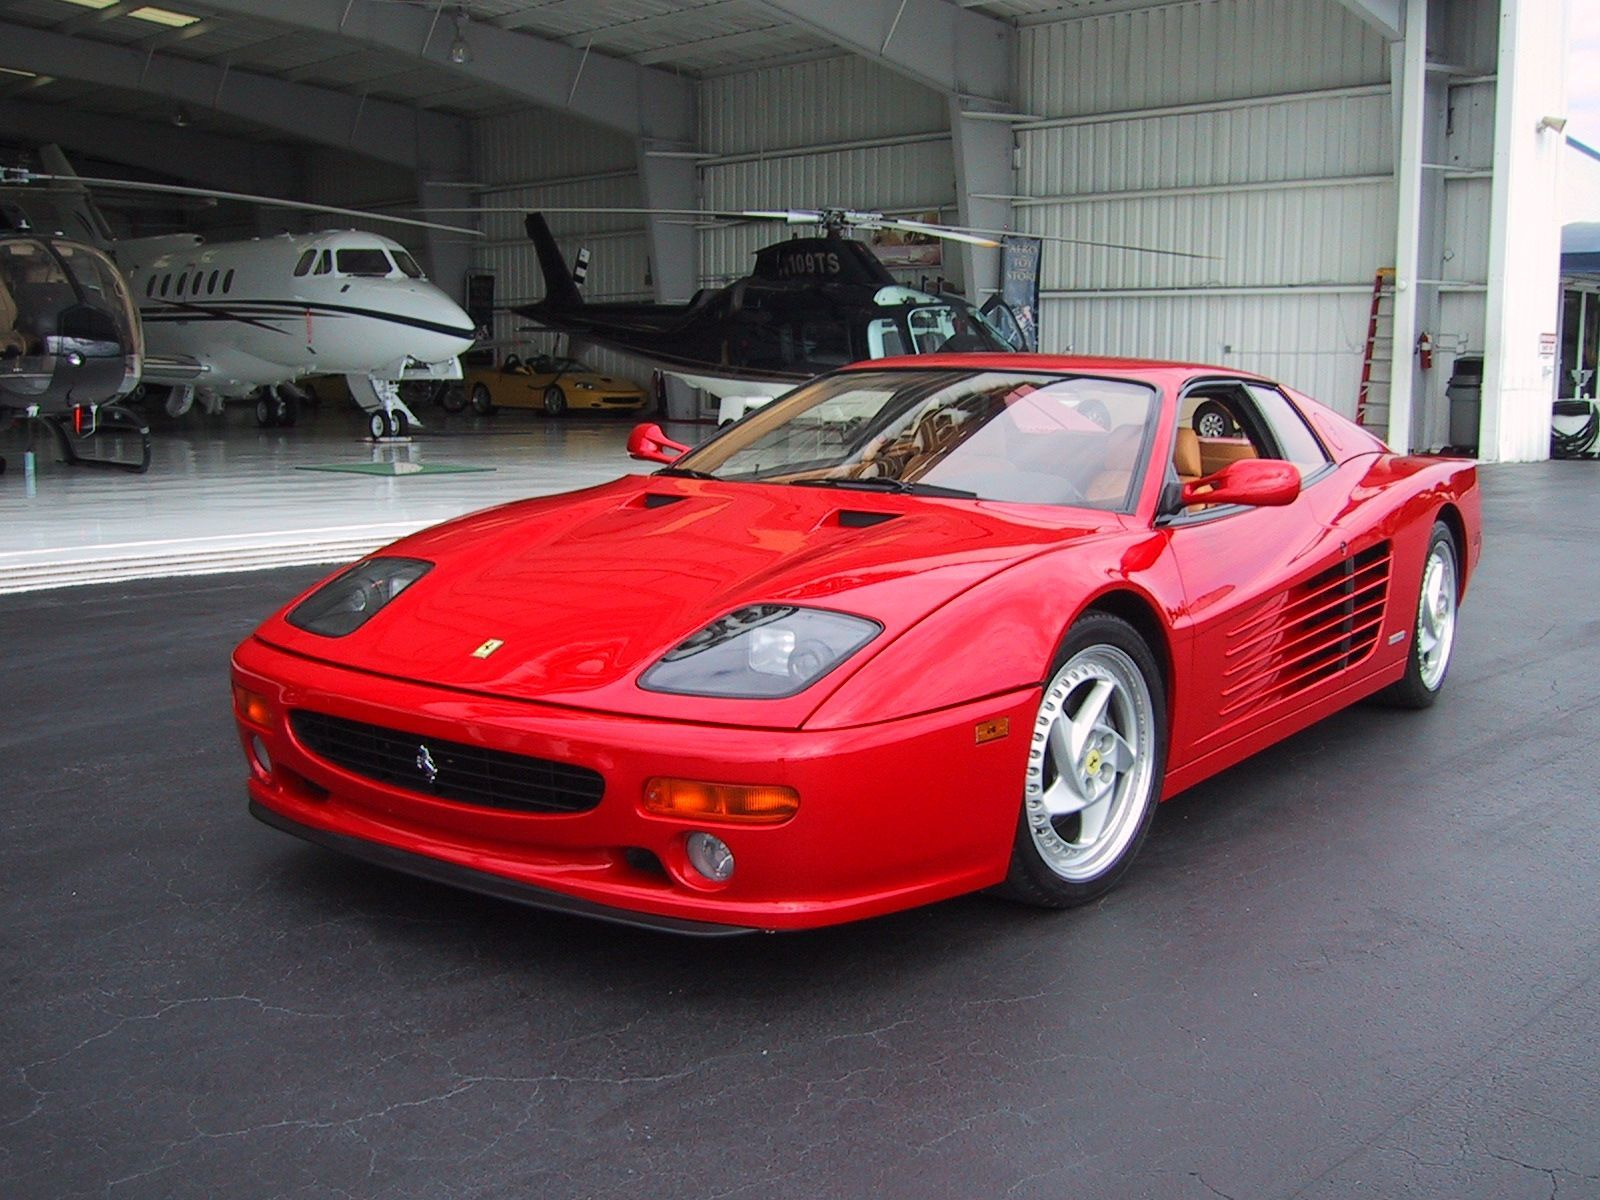 Cool Sports Cars Ferrari: Ferrari, Cars And